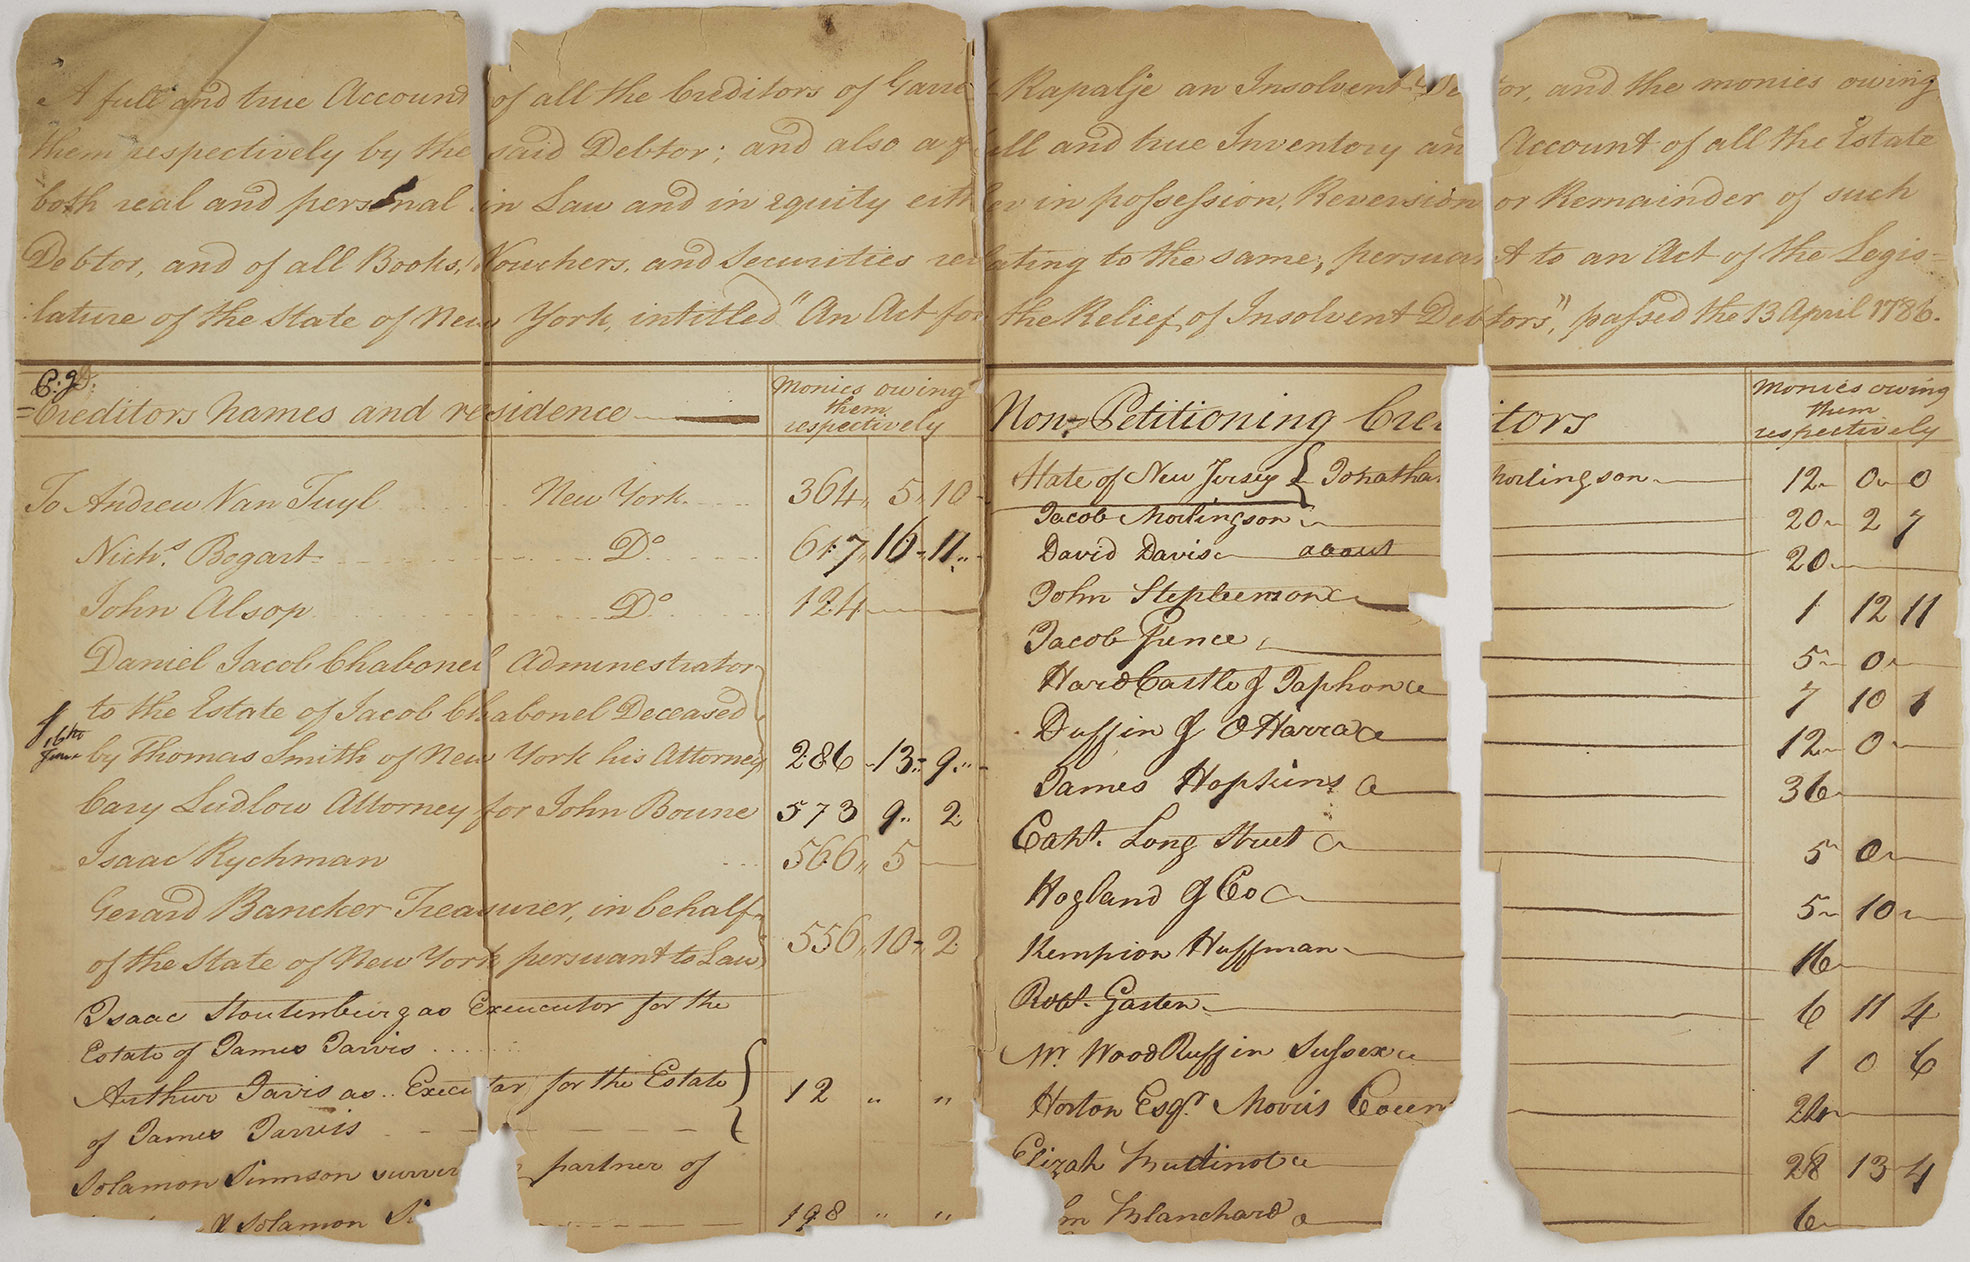 Account and inventory of real estate and personal estate of Garret Rapalje: Real Estate and Personal Estate, 1787. On the left side his petitioning creditors are listed and on the right side, non-petitioning creditors. Also of note is the reference to the 1786 law for the relief of insolvent debtors.